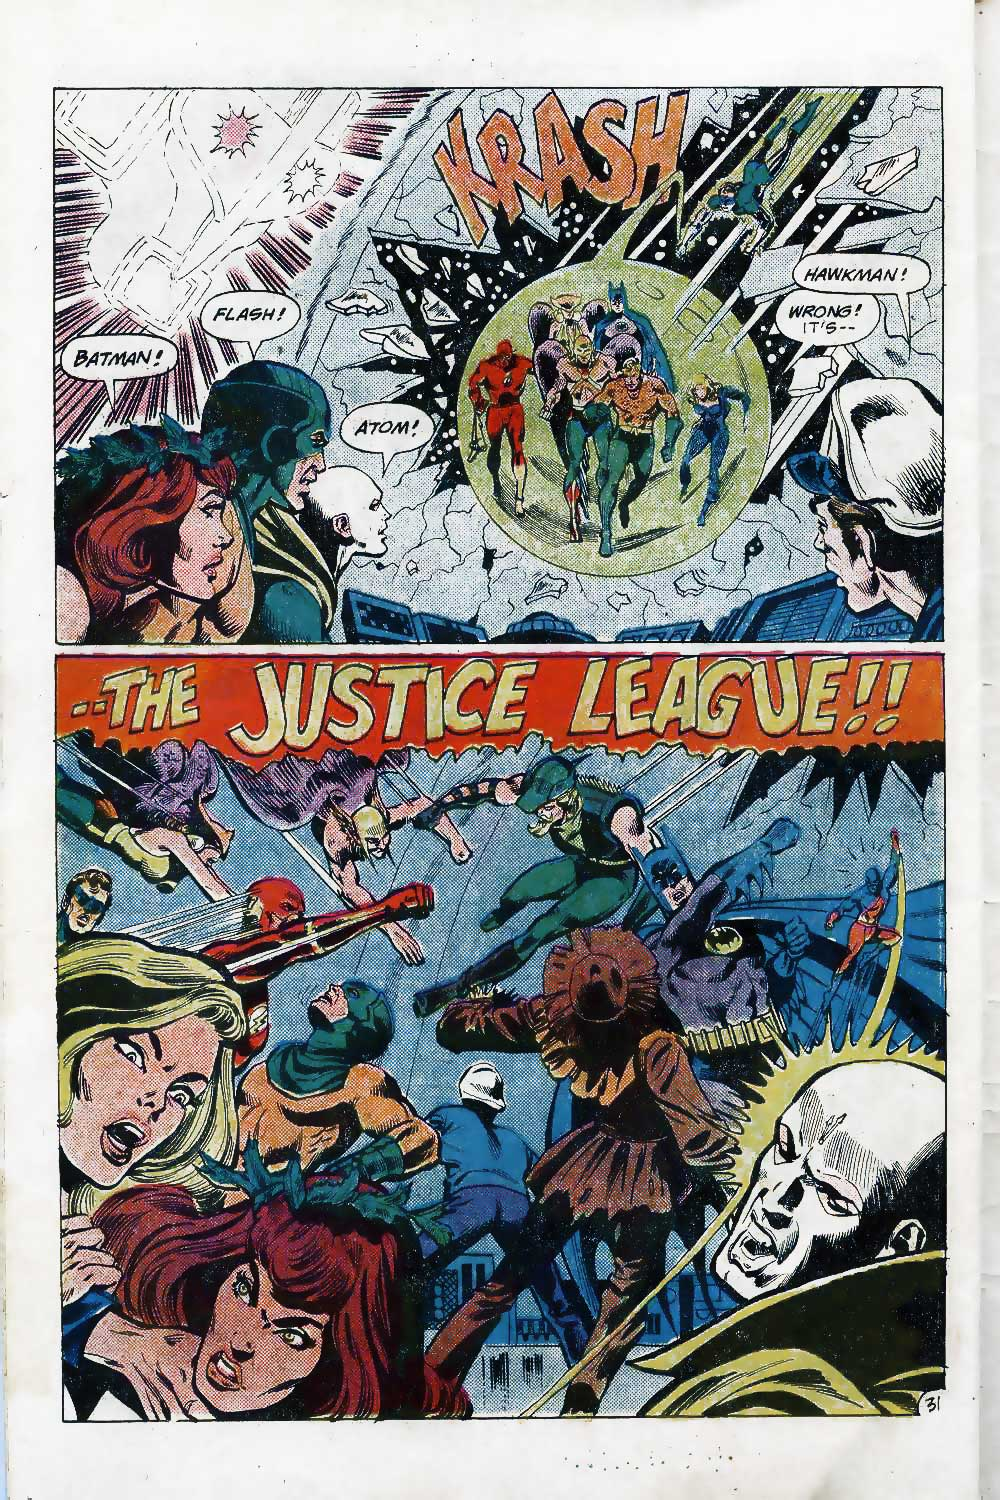 Dick DIllin on Justice League of America #143